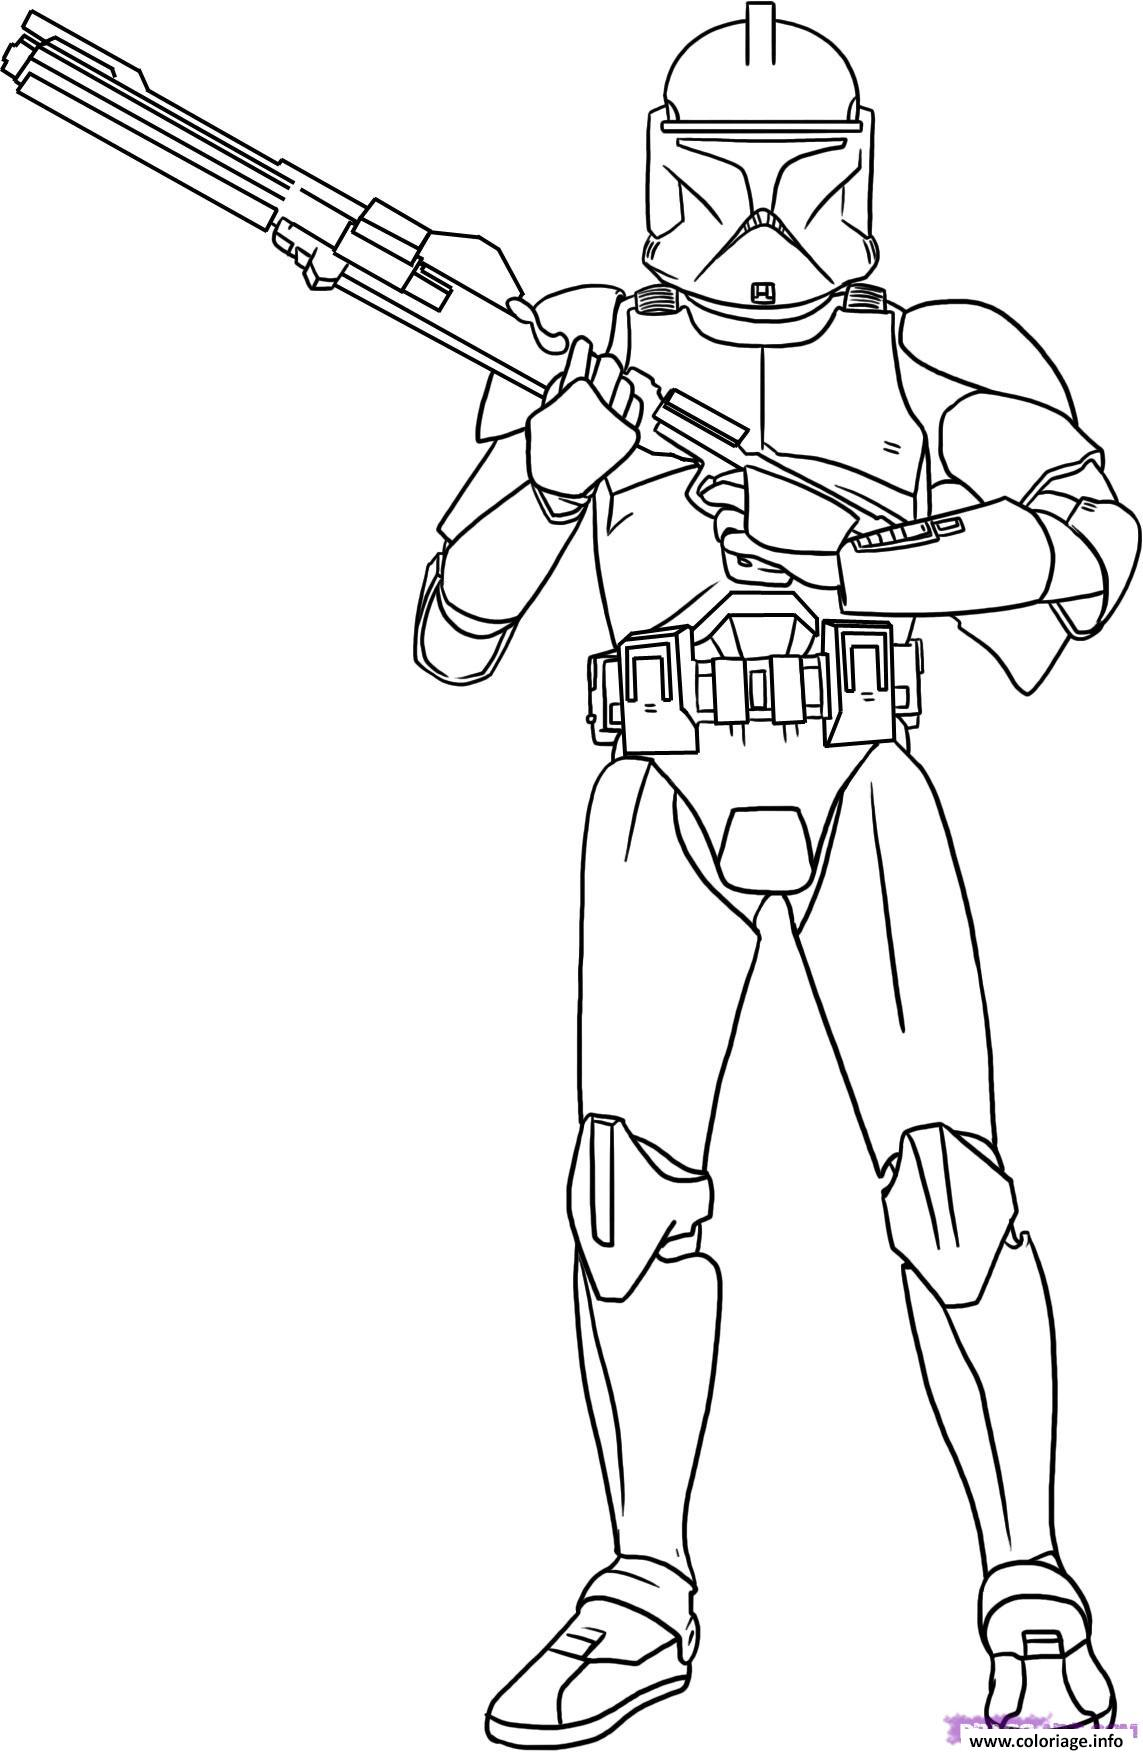 Coloriage star wars 2 - Stars wars coloriage ...